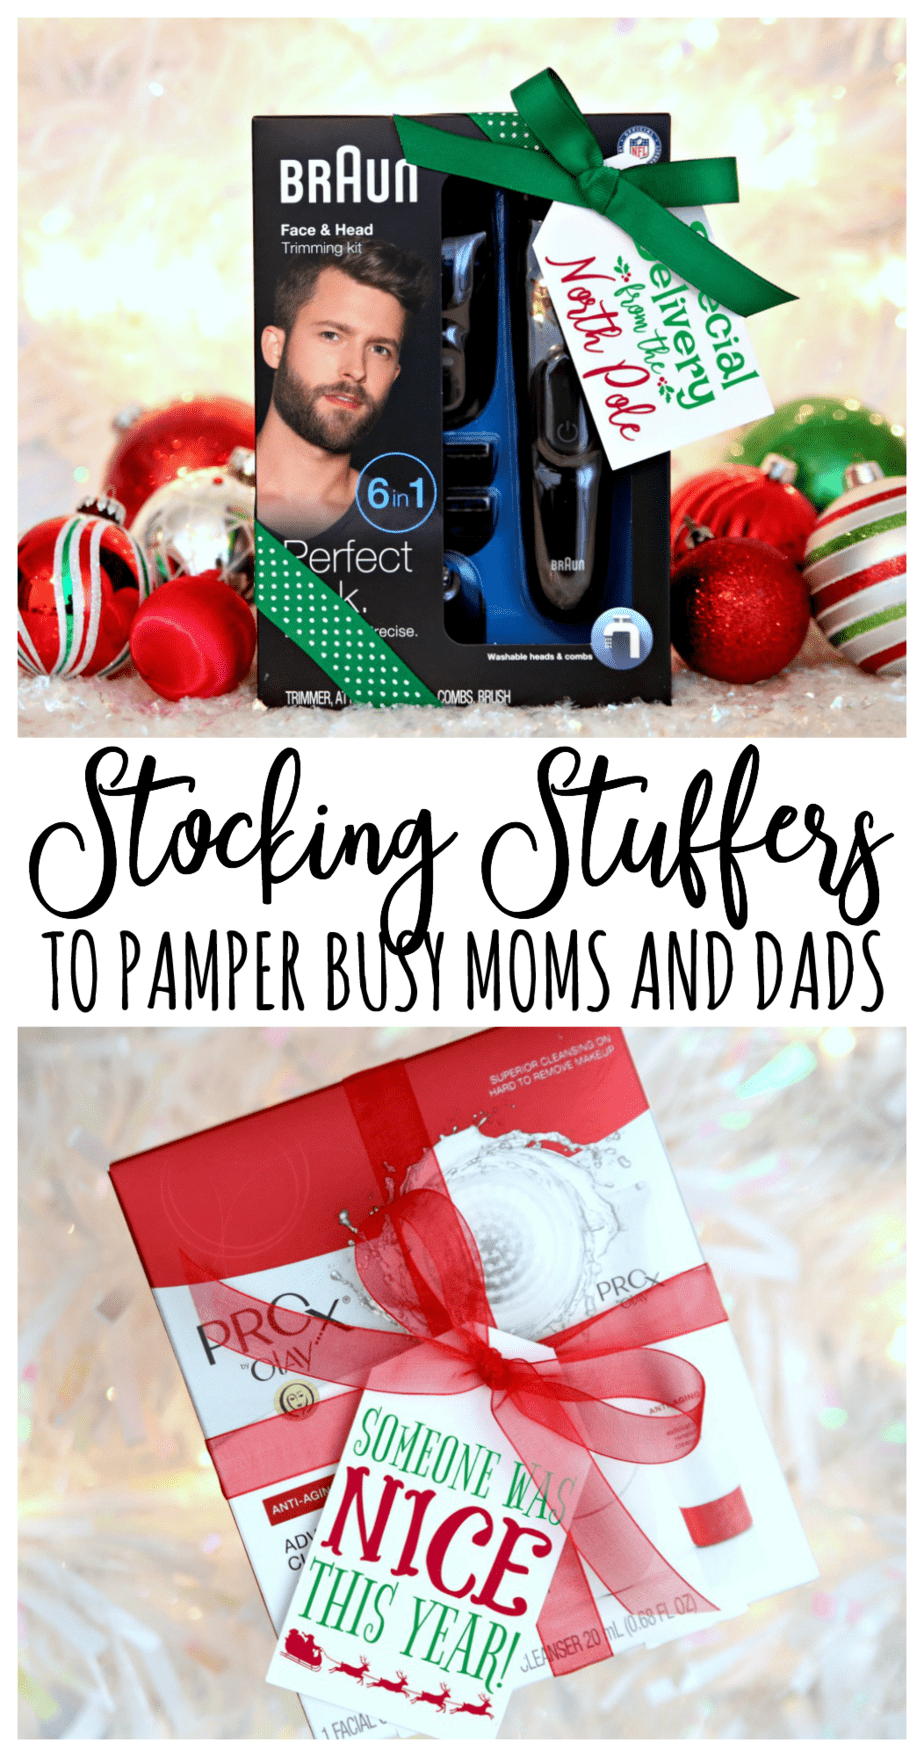 Stocking Stuffers to Pamper Busy Moms and Dads